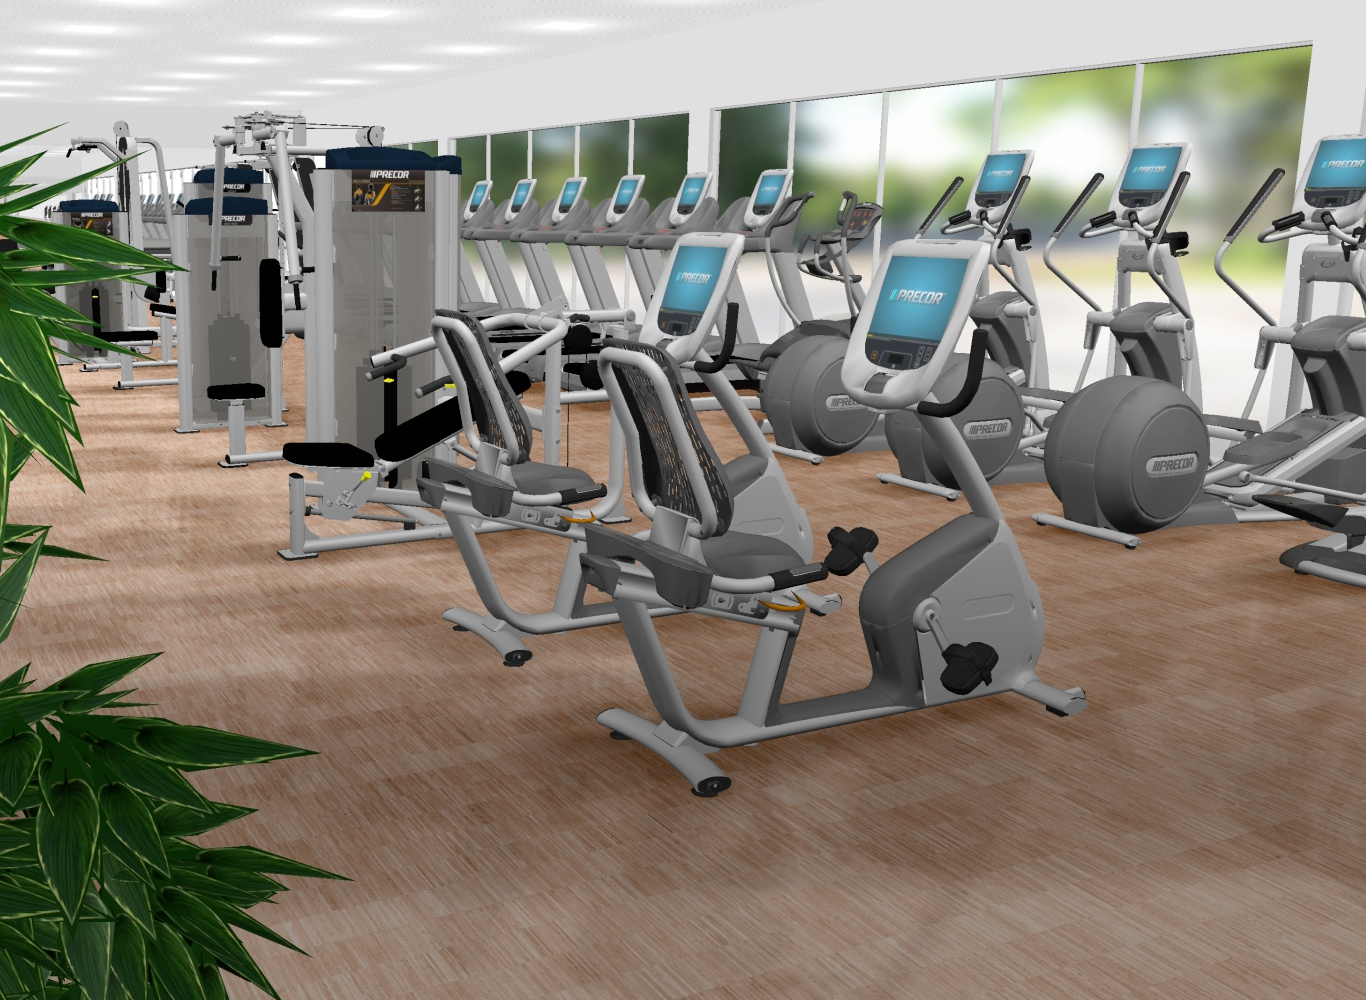 3D Designs of your Fitness Room before you buy! Commercial Fitness Solutions by Leisure Fitness! #mybodyismytemple #leisurefitness